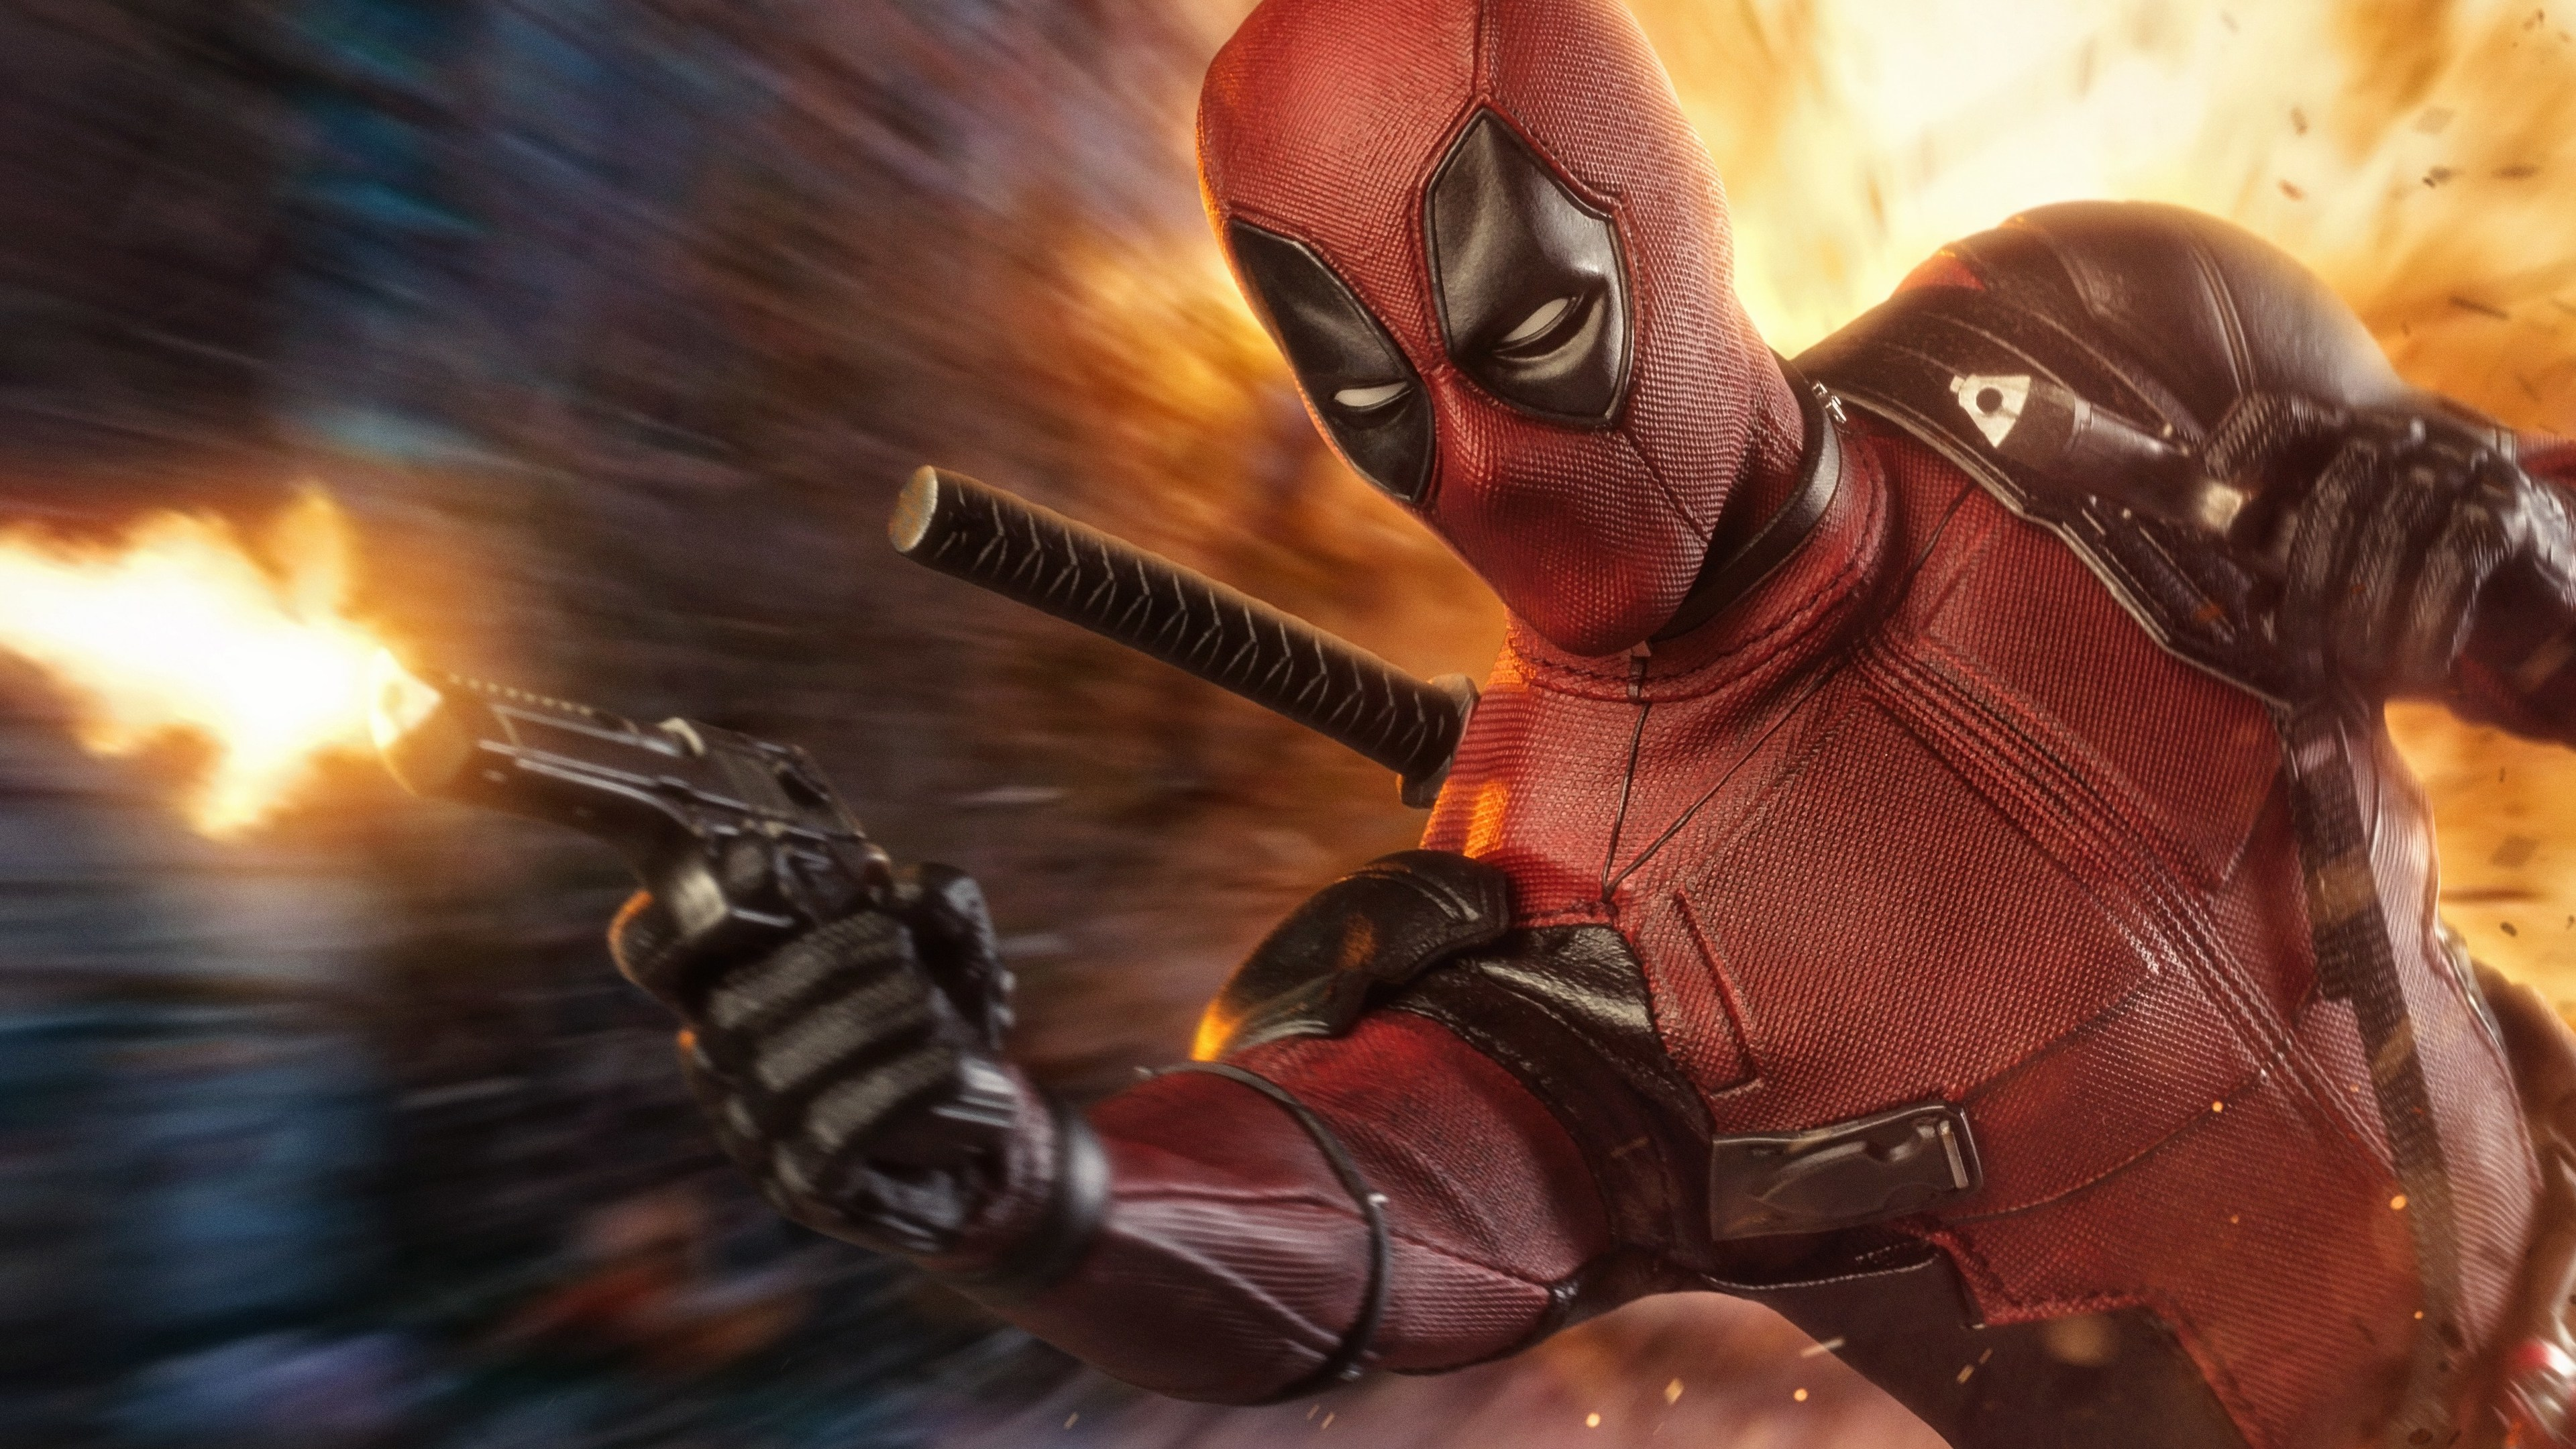 Deadpool with a gun Wallpaper 4k Ultra HD ID:3801